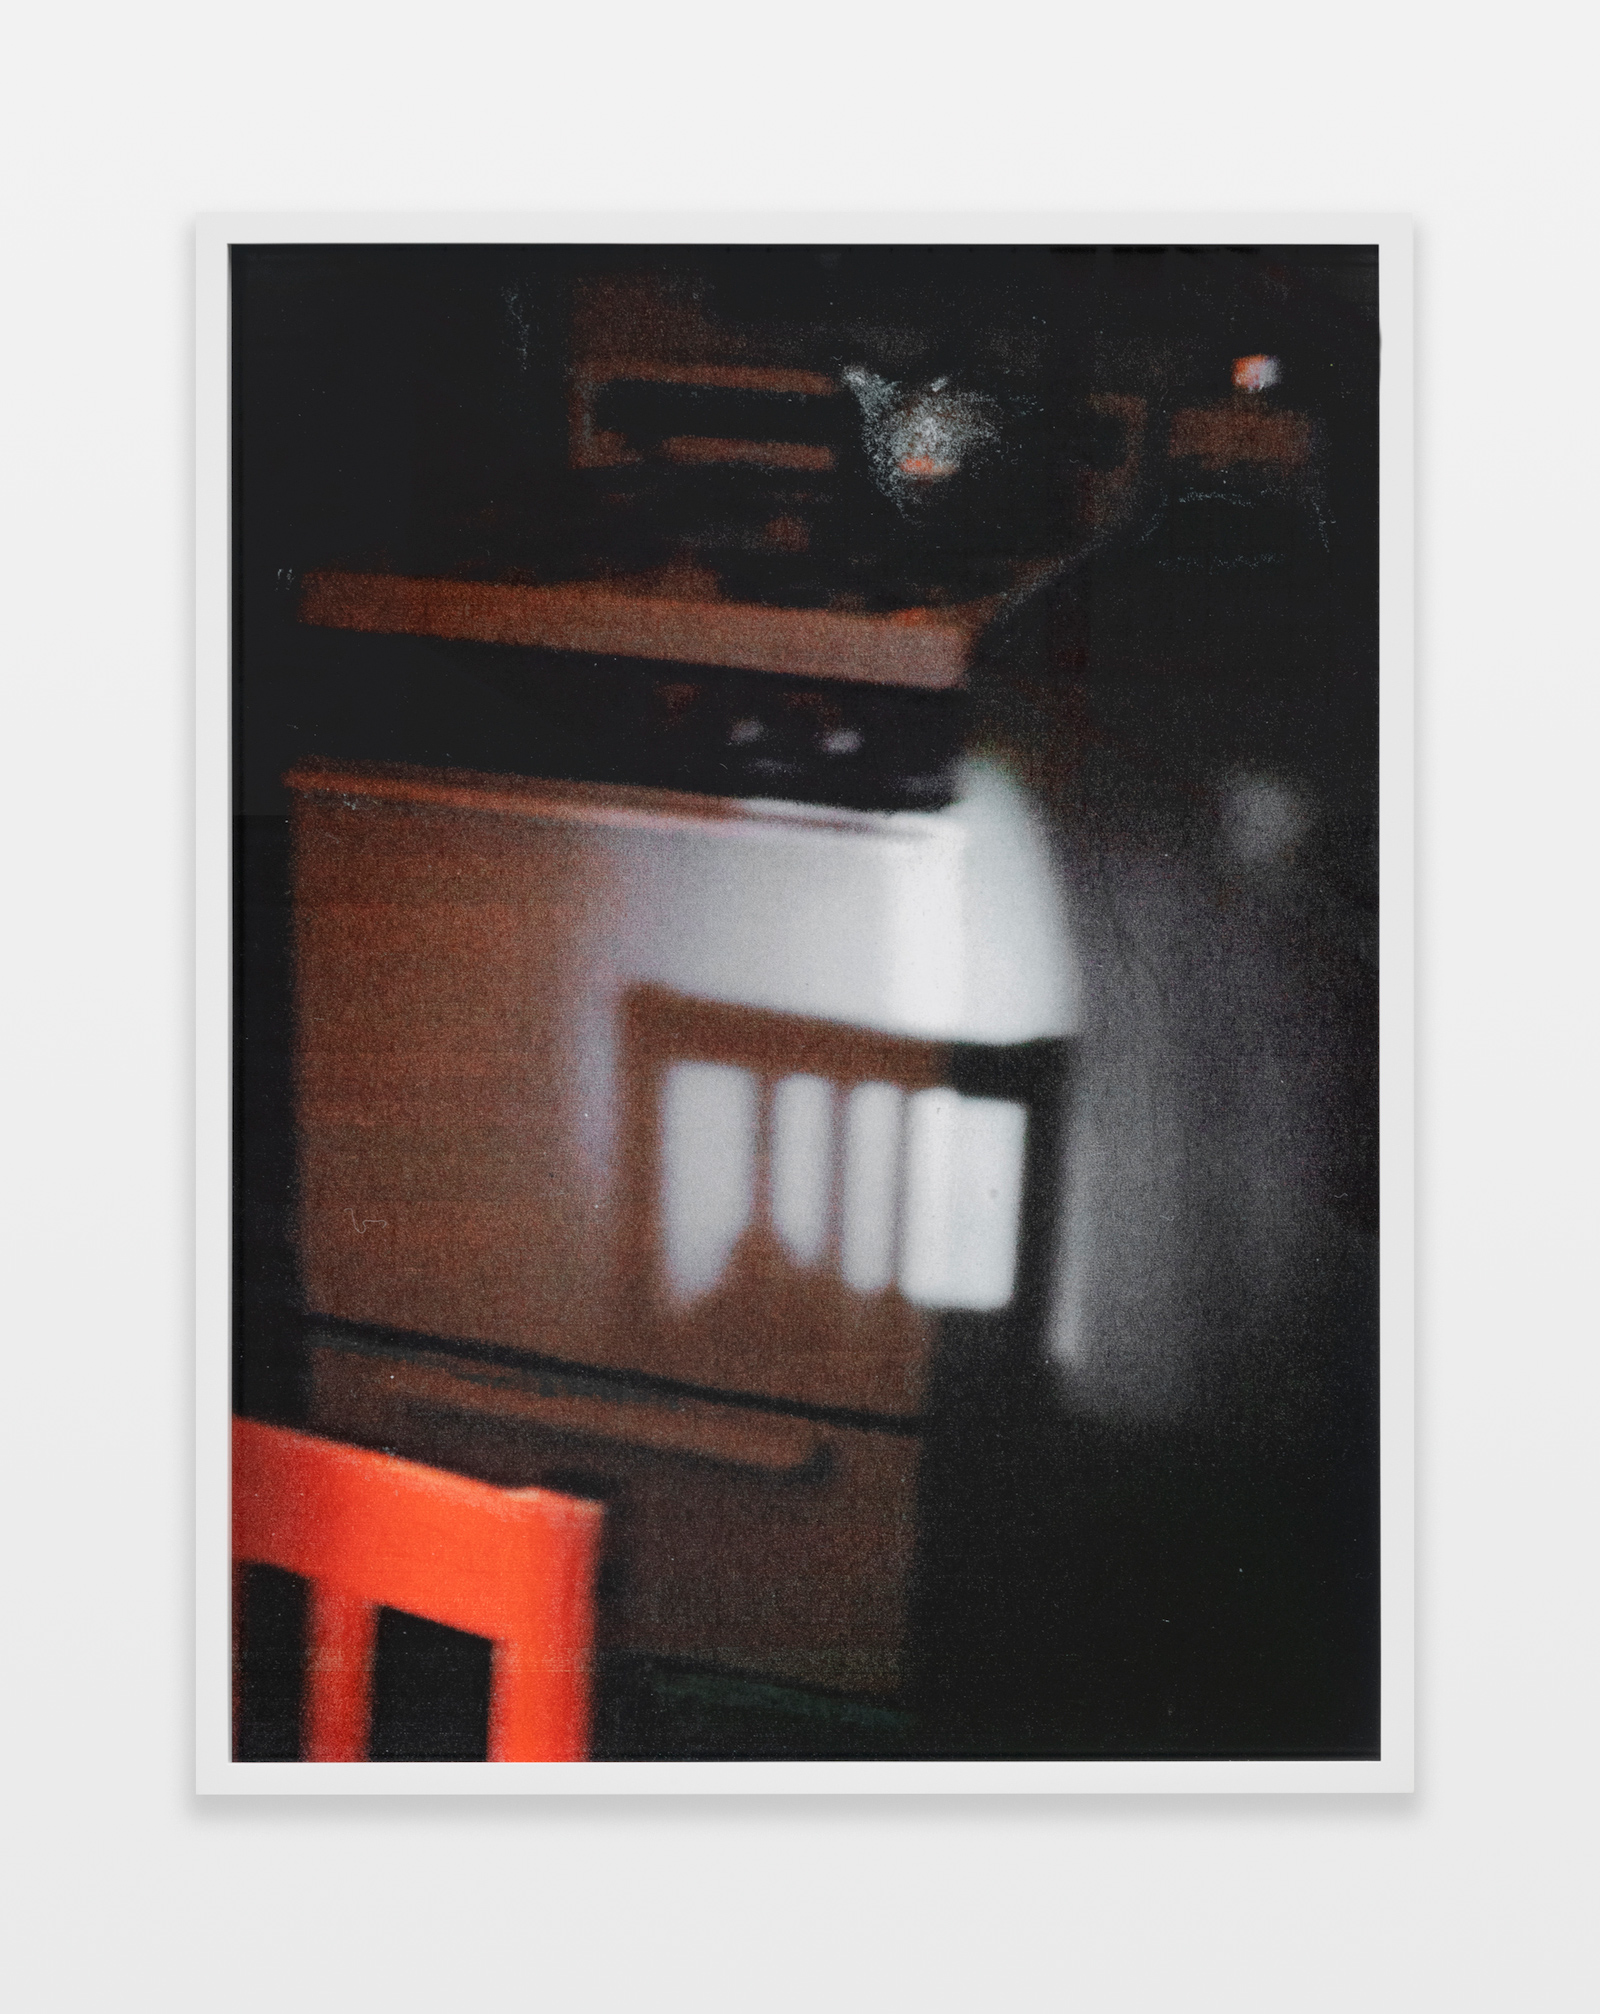 Barbara Ess, Kitchen [Shut-In Series], 2018-2019, archival pigment print, 29.19h x 22.19w in.